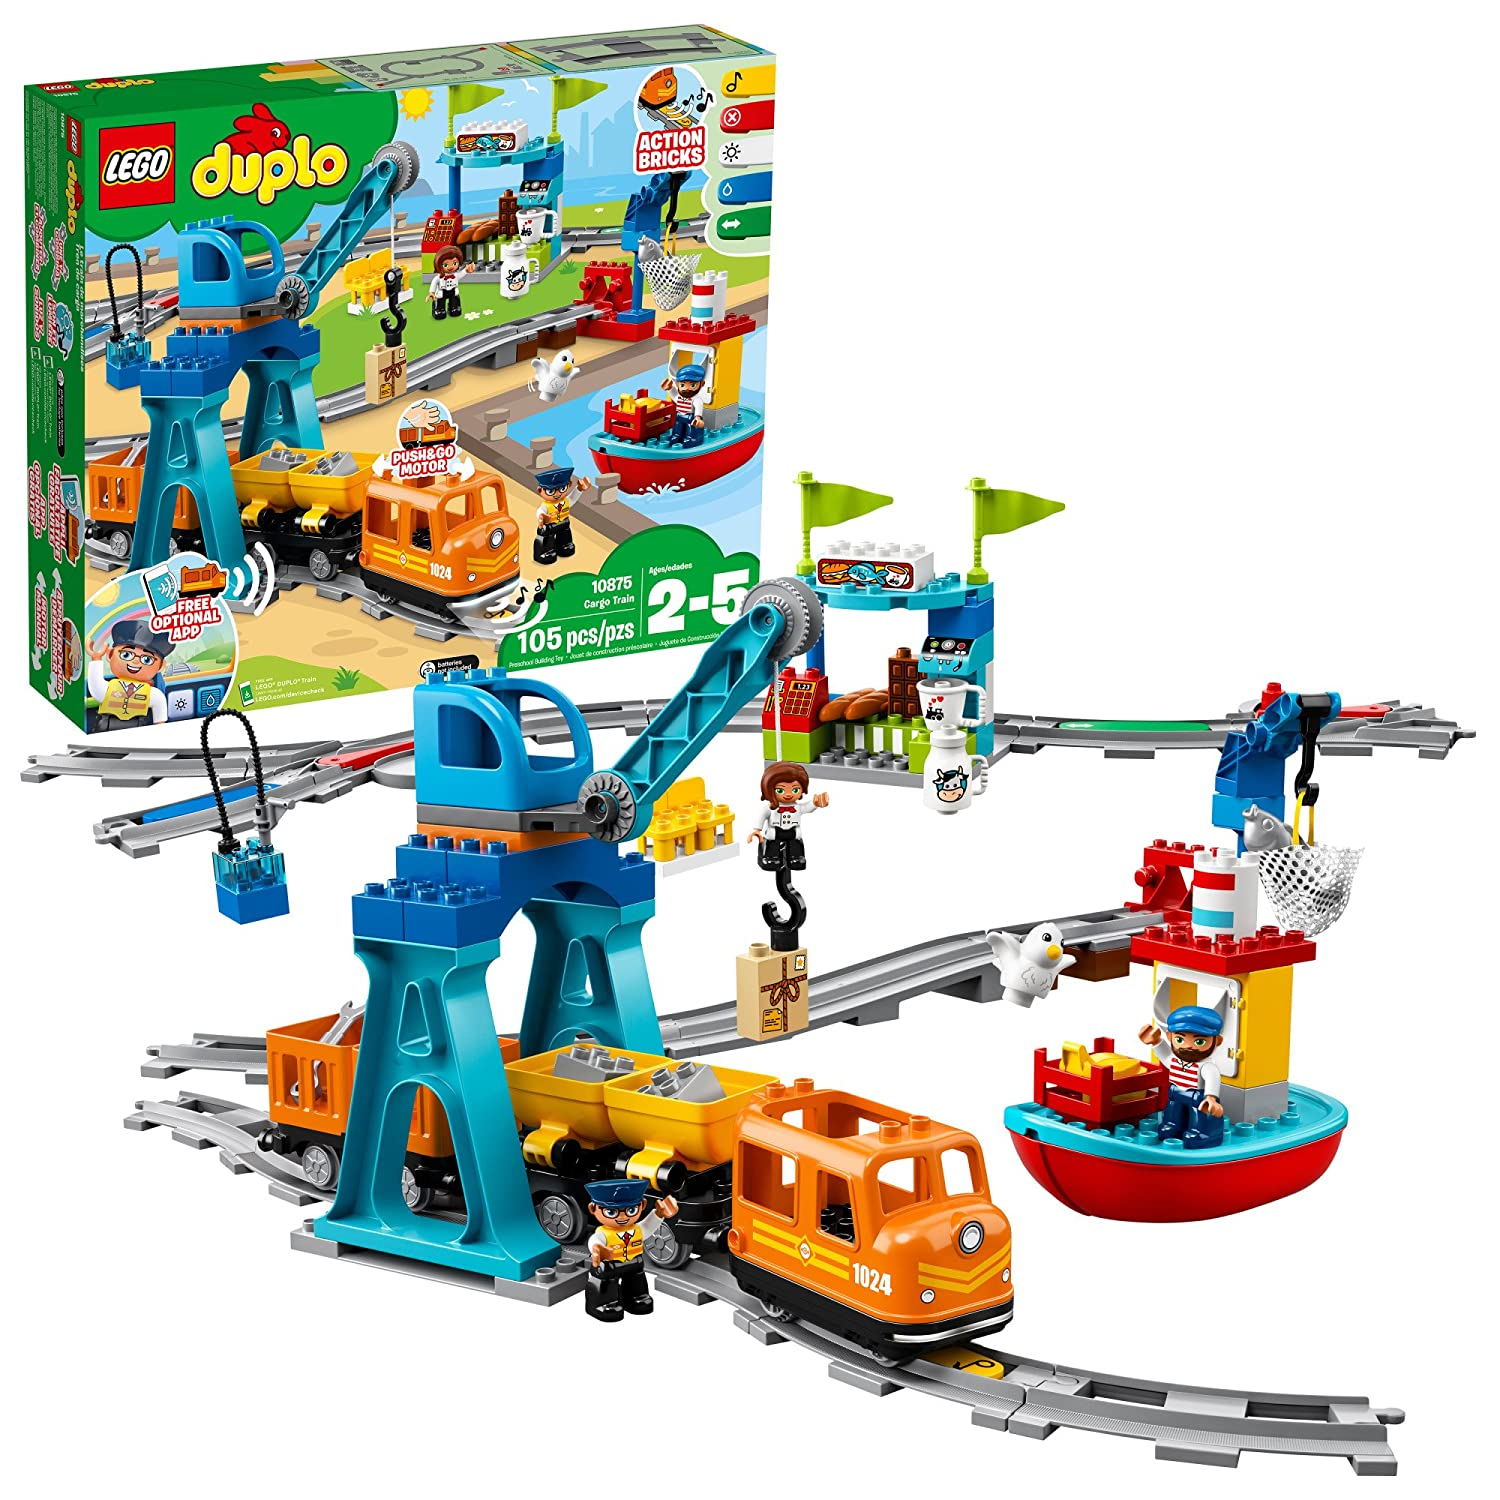 Top 9 Best Train Sets for Toddlers Reviews in 2021 15